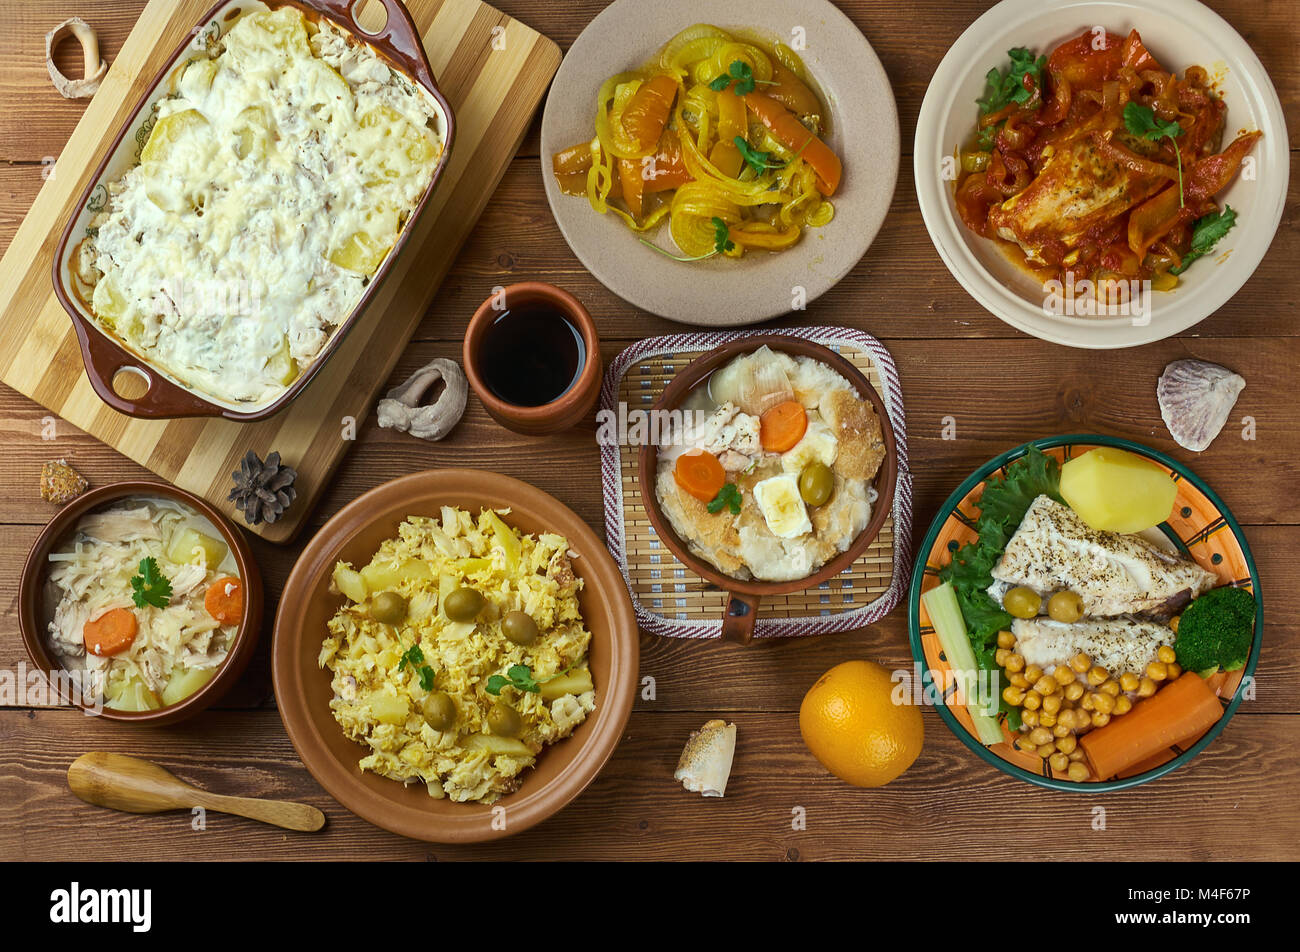 Portuguese cuisine - Traditional assorted Portugal dishes, Top